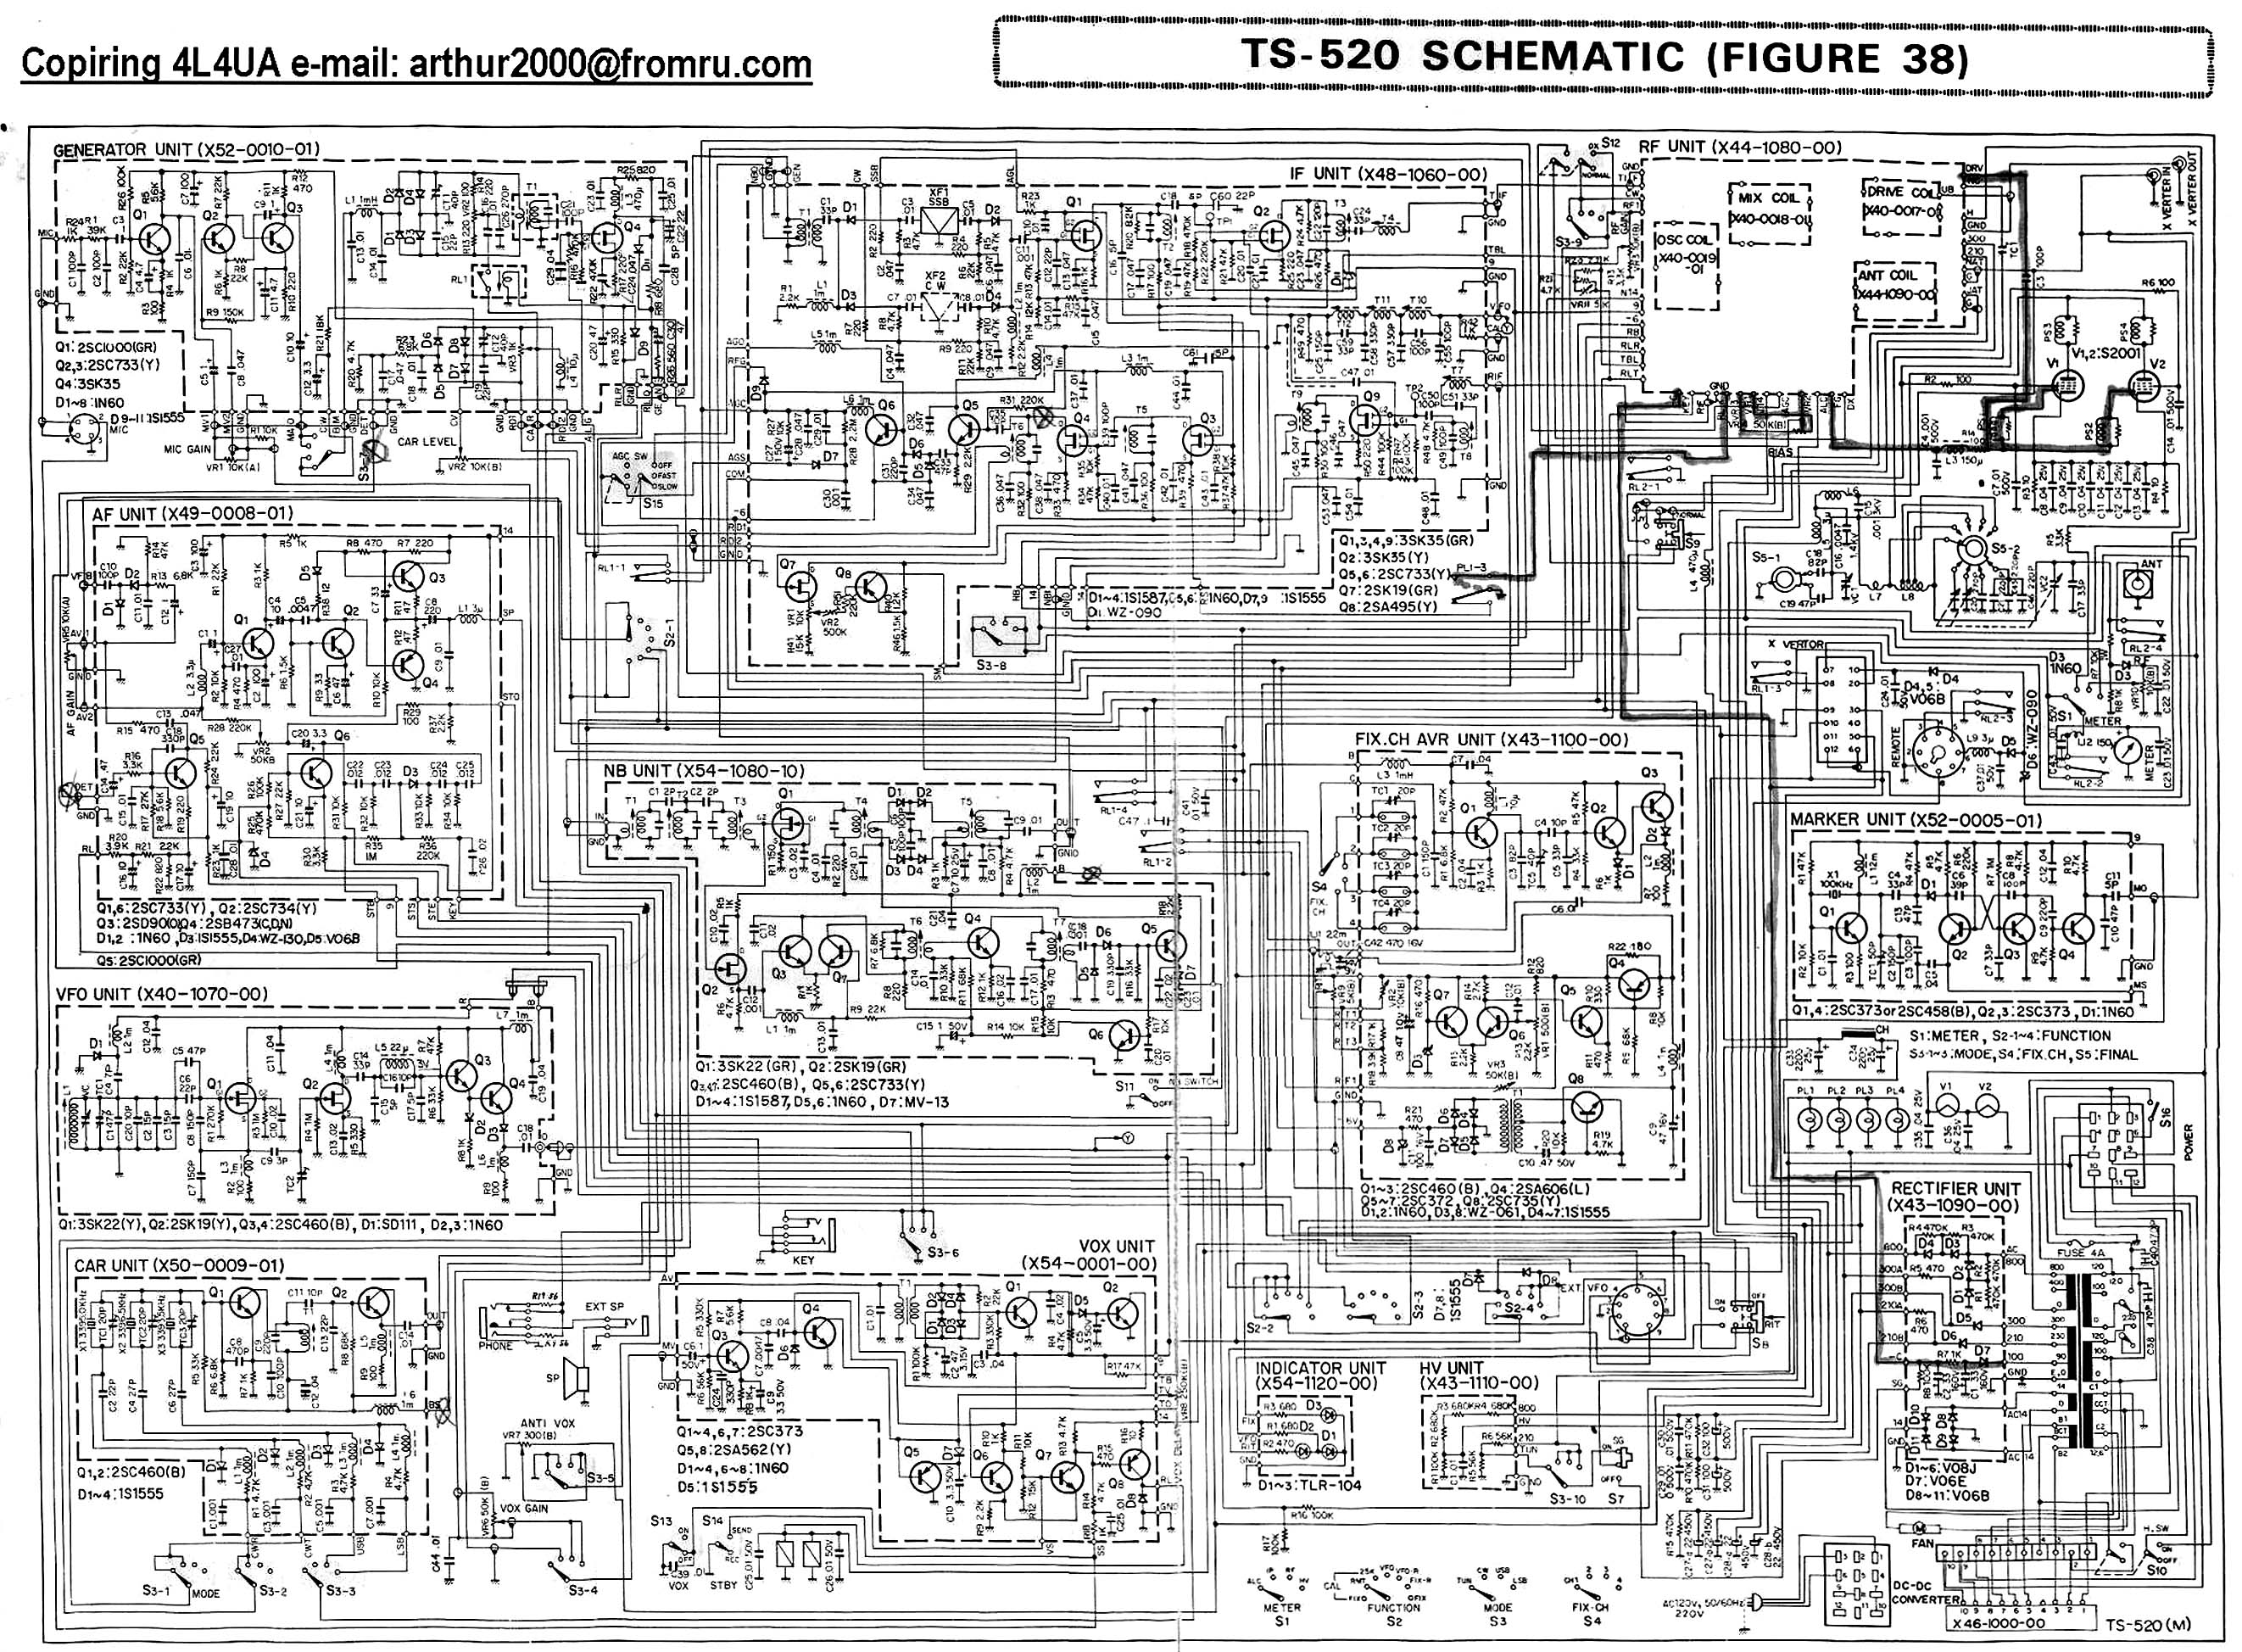 Lincoln Sa Wiring Diagram on lincoln electric wiring diagrams, sunbeam mixmaster diagram, lincoln 250 diesel welder wiring diagram remote,